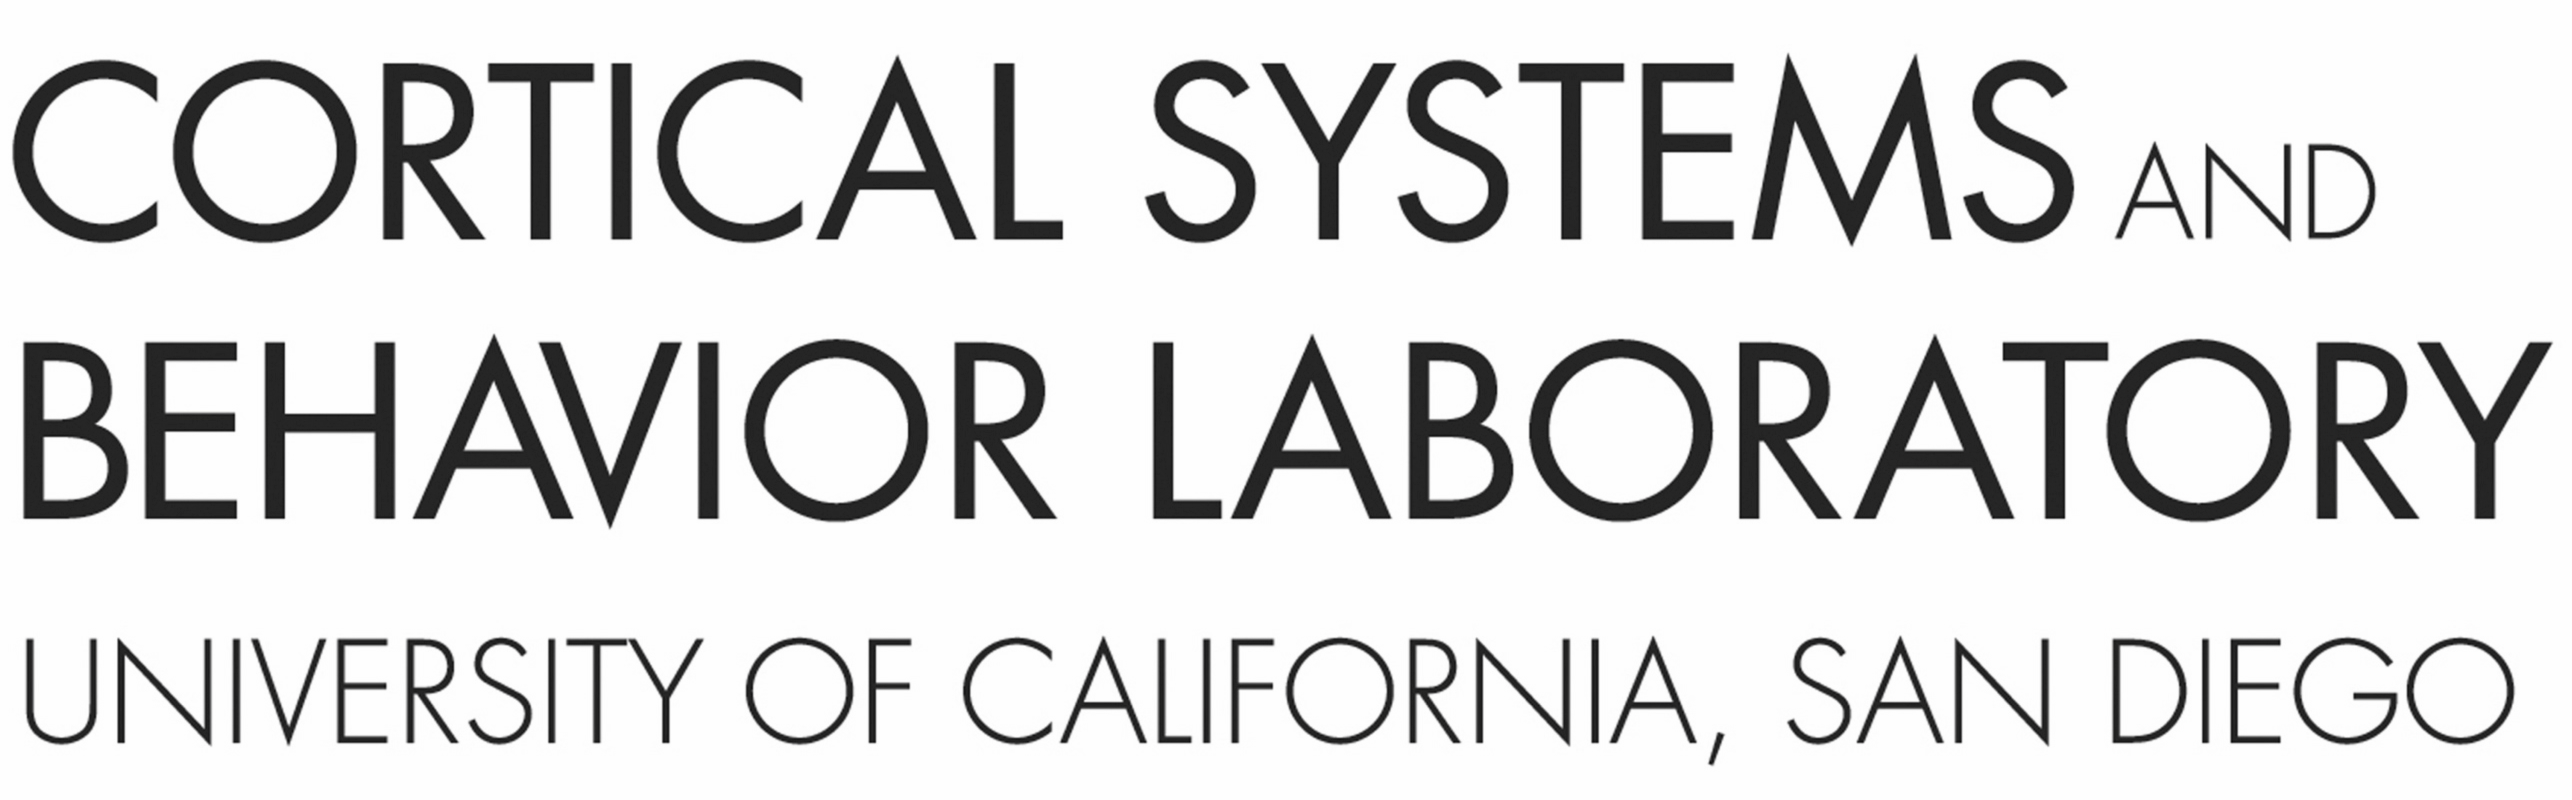 Cortical Systems and Behavior Laboratory